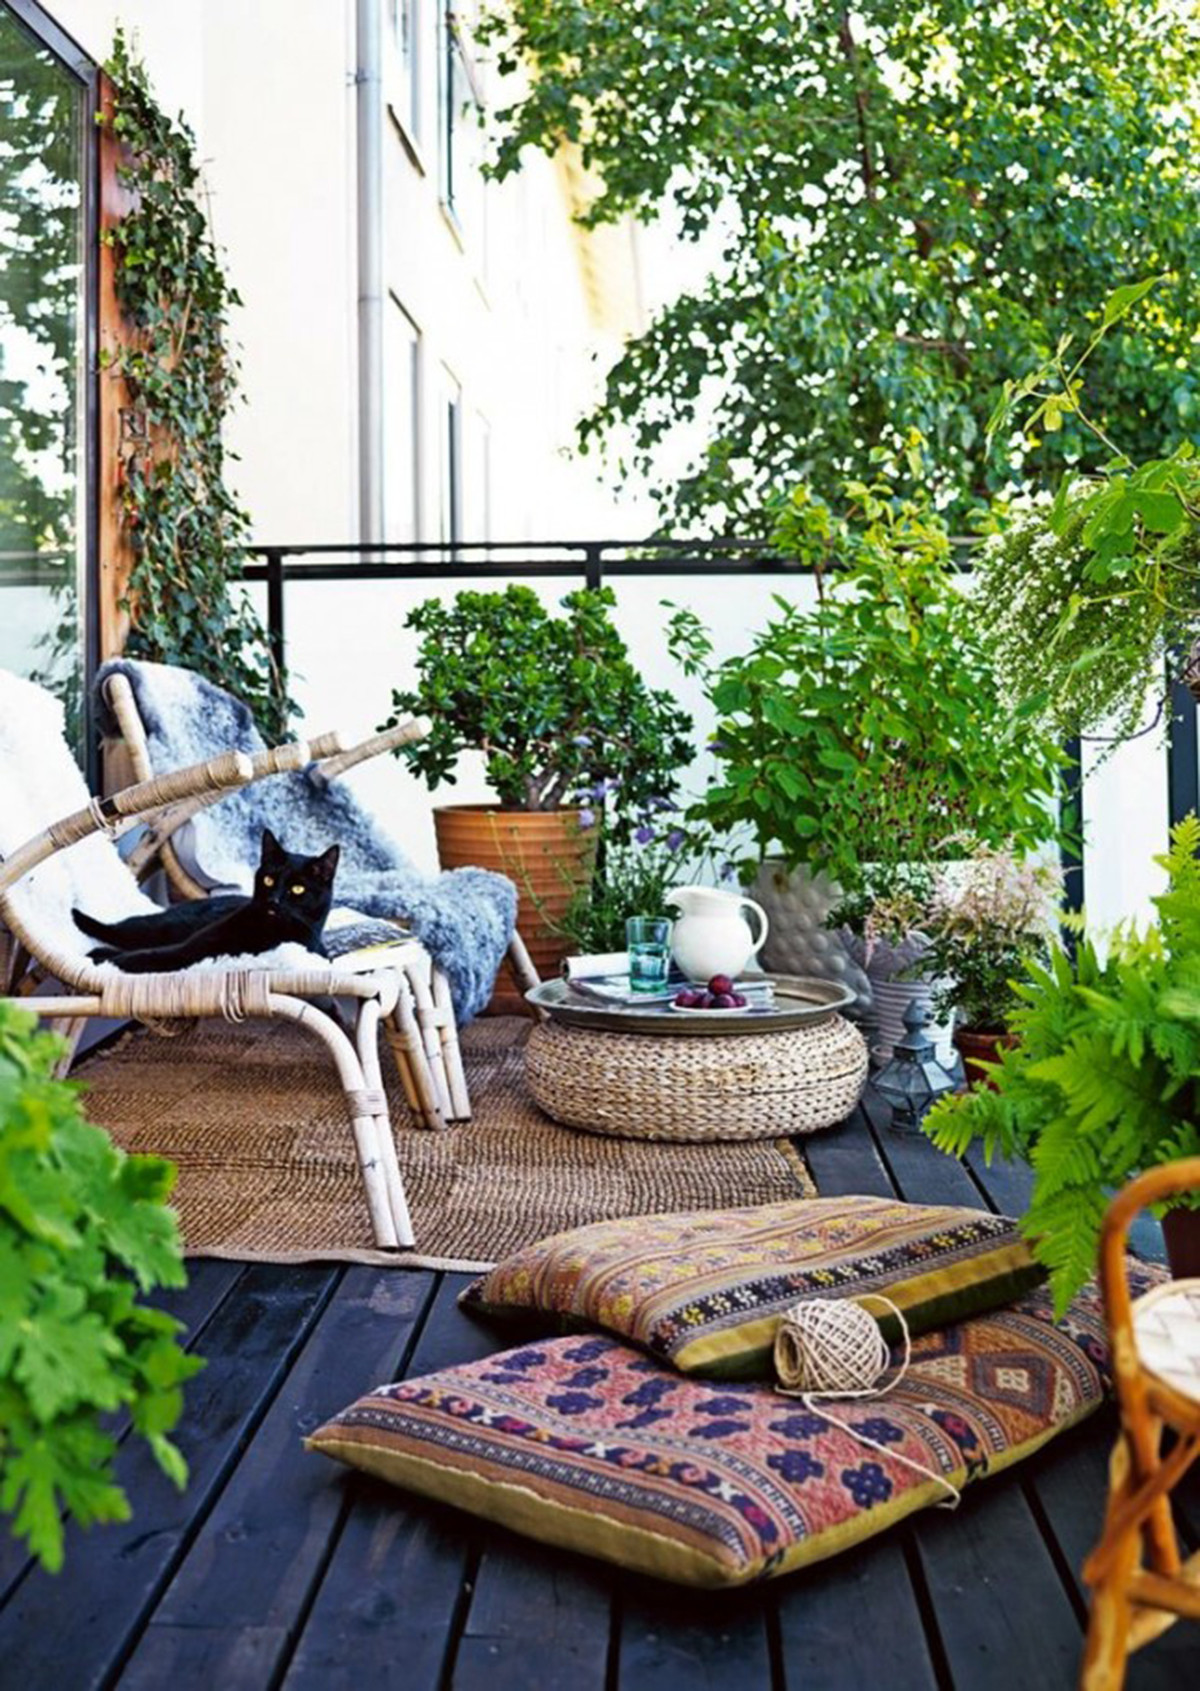 Small Balcony Garden With Rattan Rug on Wooden Deck Dwellingdecor